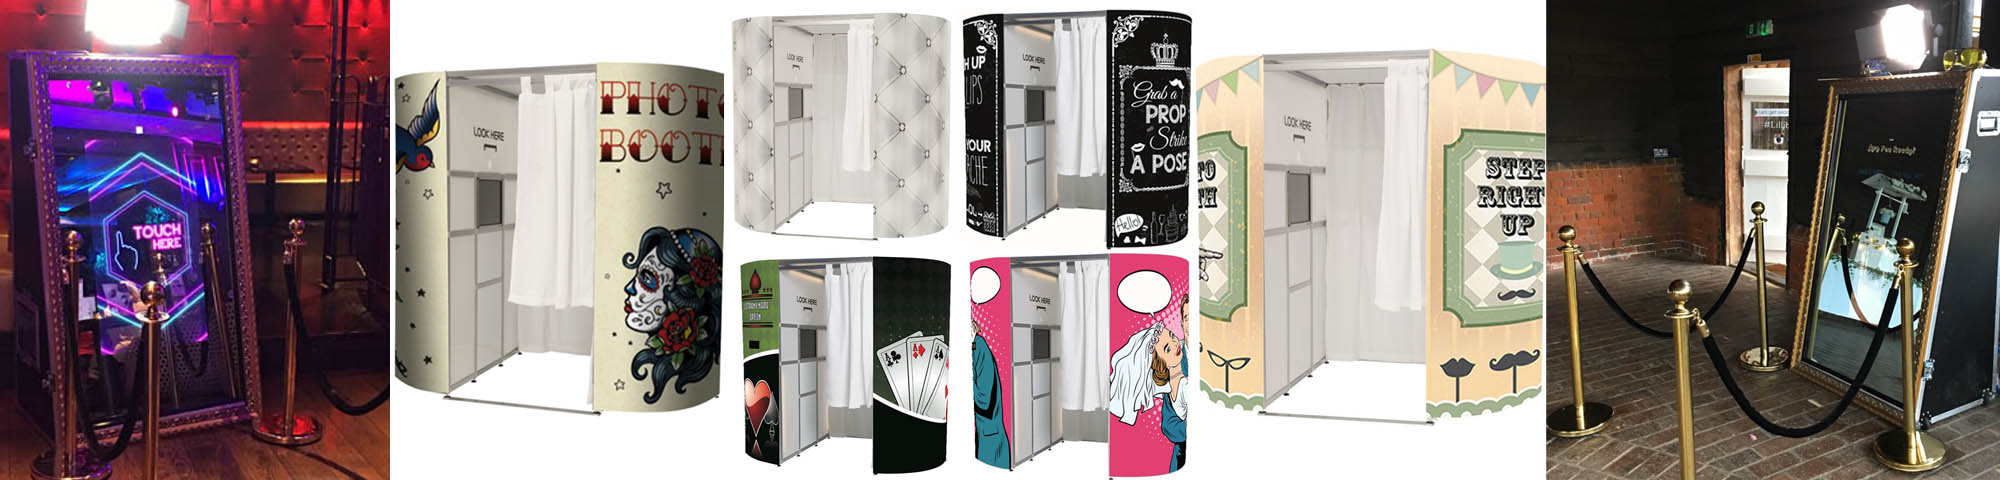 Photo booth rental in Brixton - some of our great photo booths in London venues